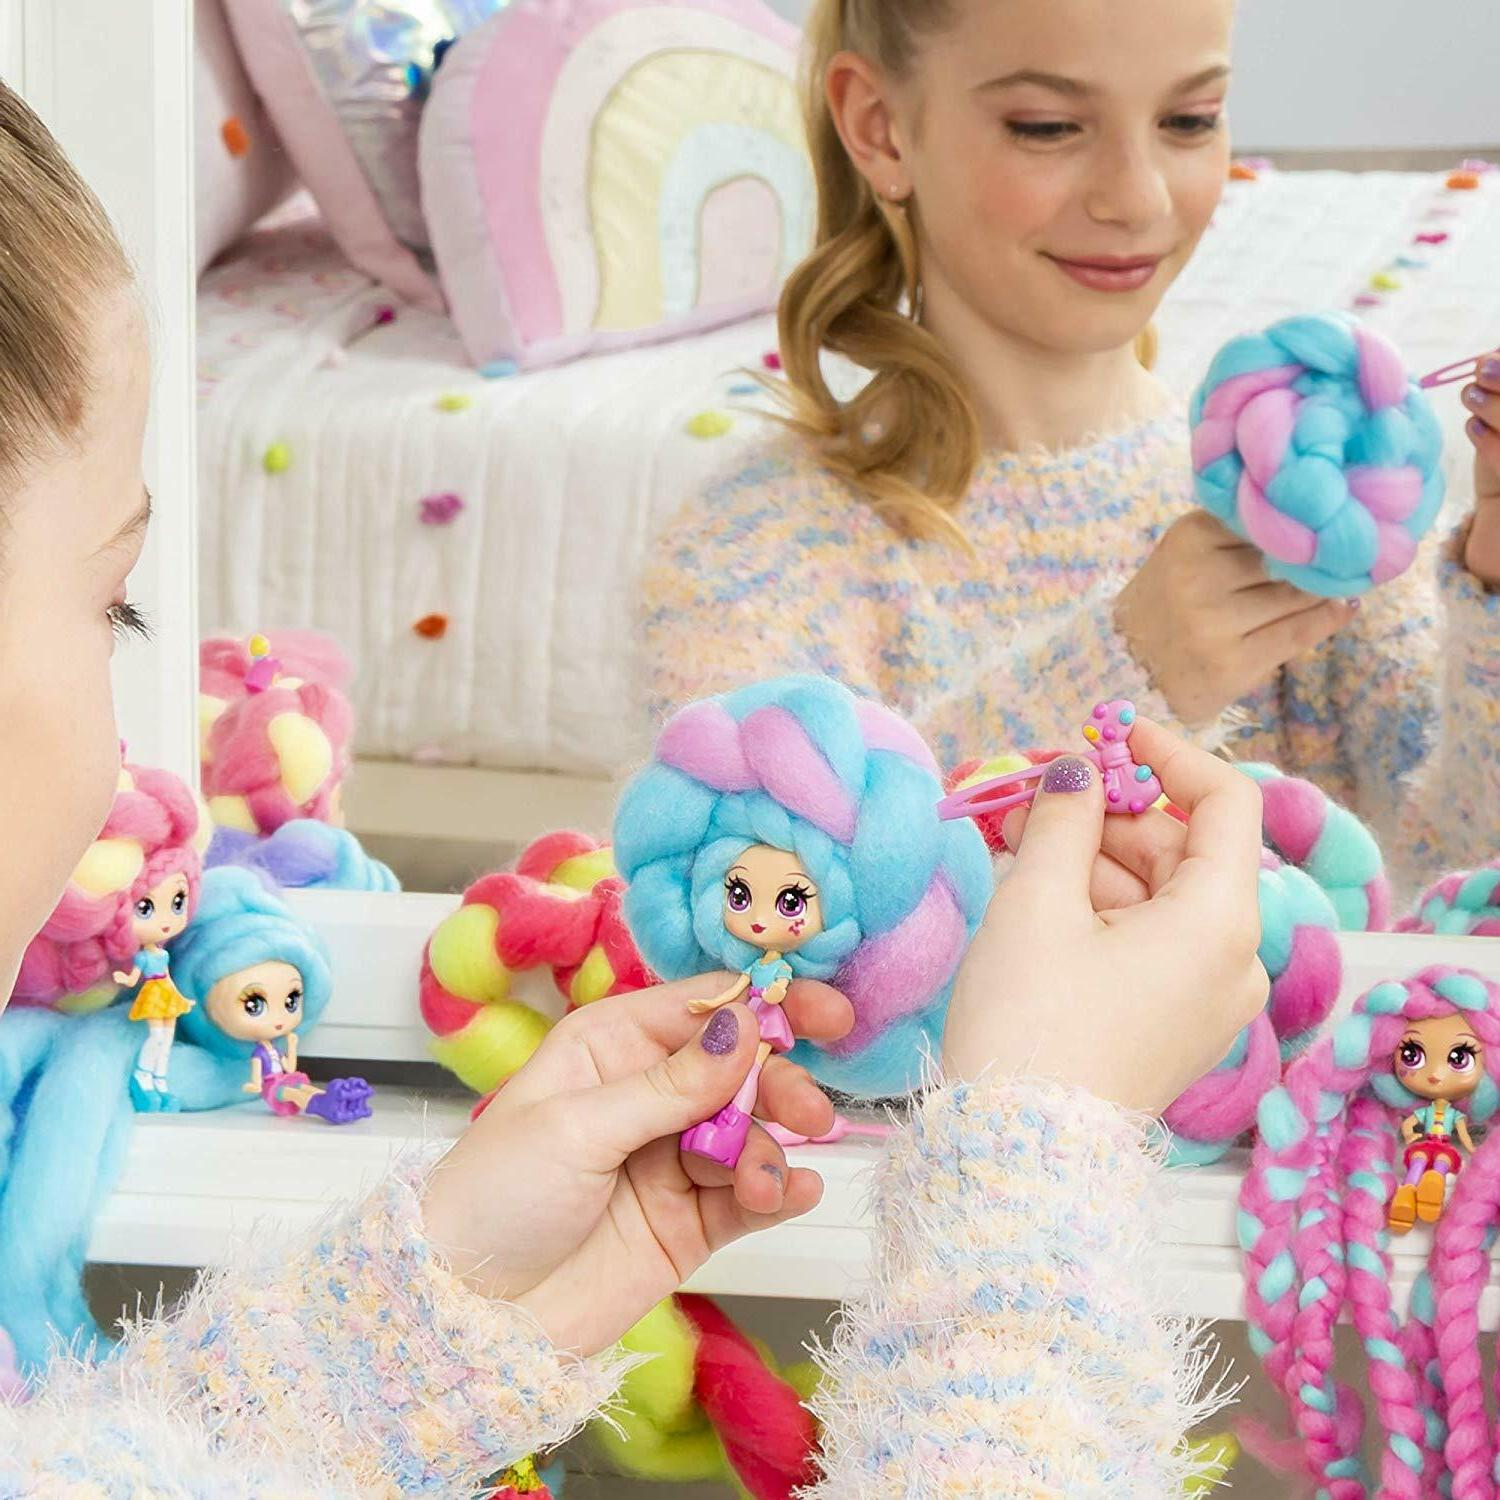 Candylocks 3-Inch Scented Collectible Surprise Doll May